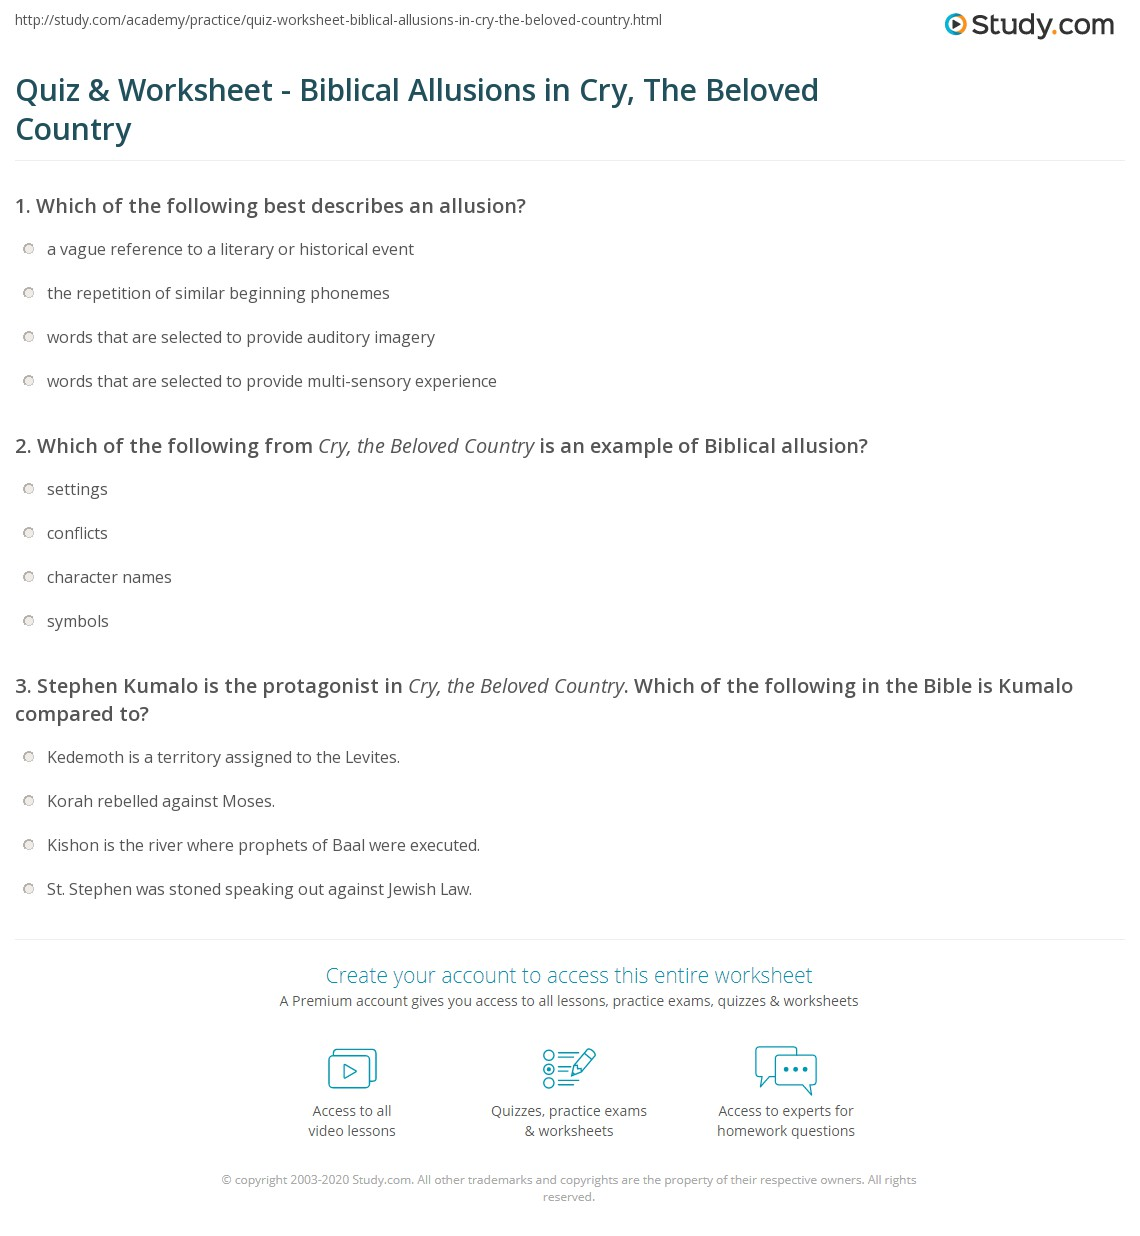 Quiz Worksheet Biblical Allusions In Cry The Beloved Country